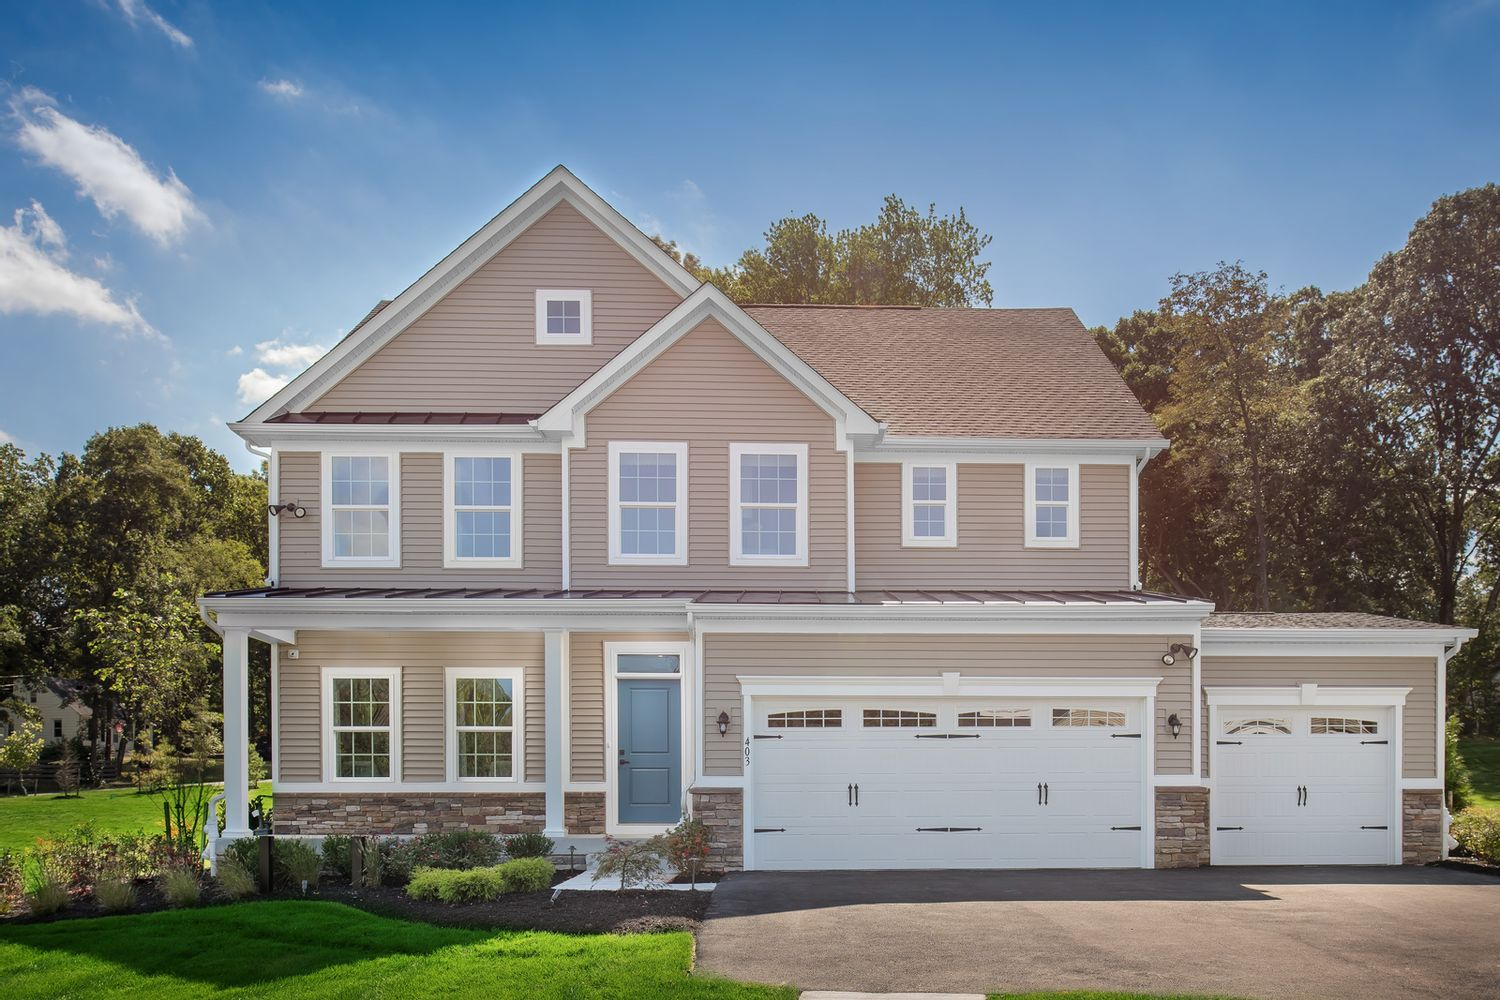 Single Family for Active at Solomons Choice - Lehigh Woodland Rd Millersville, Maryland 21108 United States